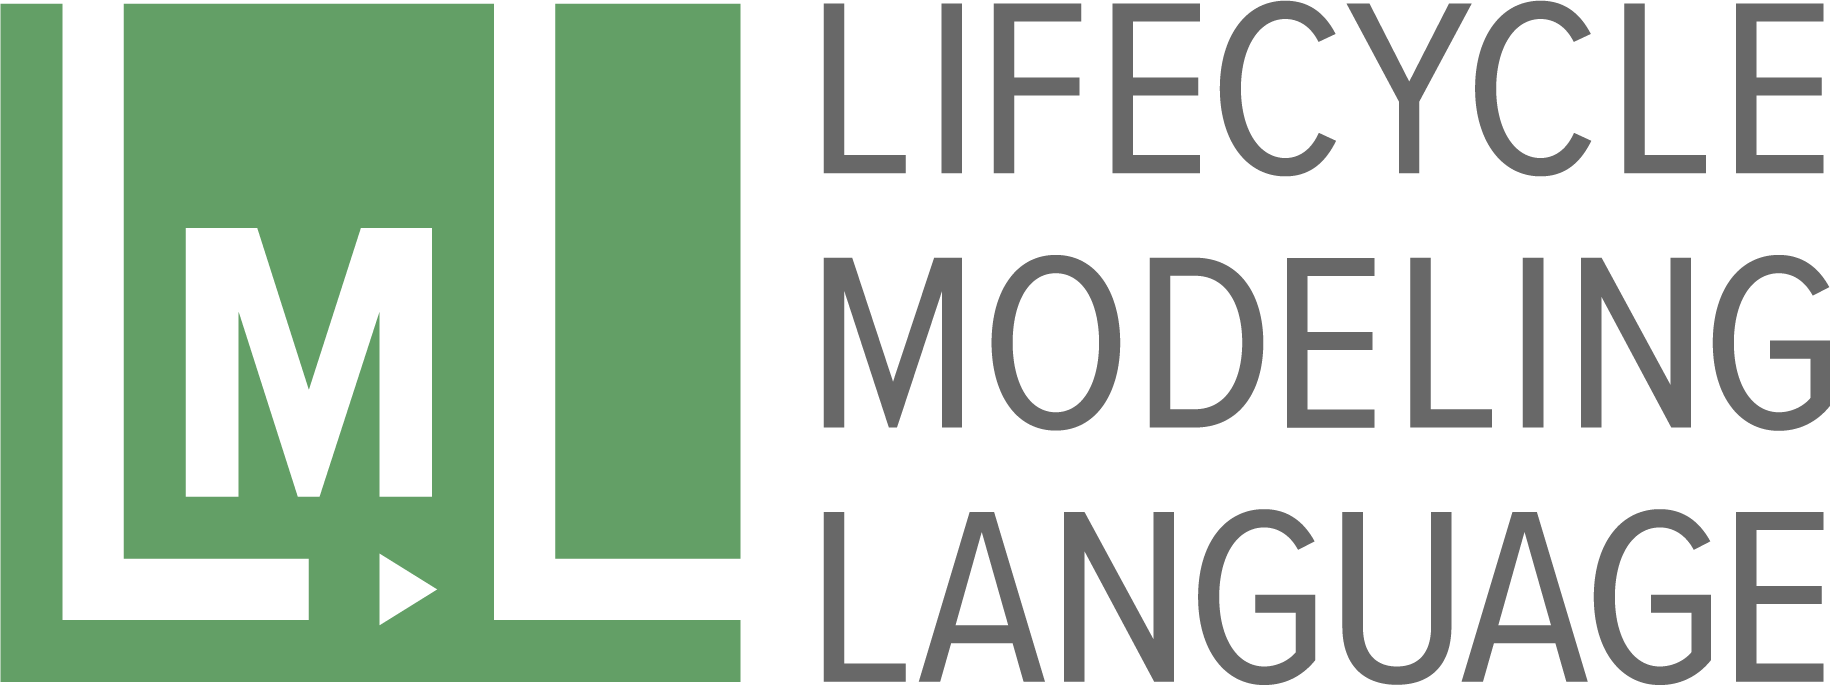 Lifecycle Modeling Language